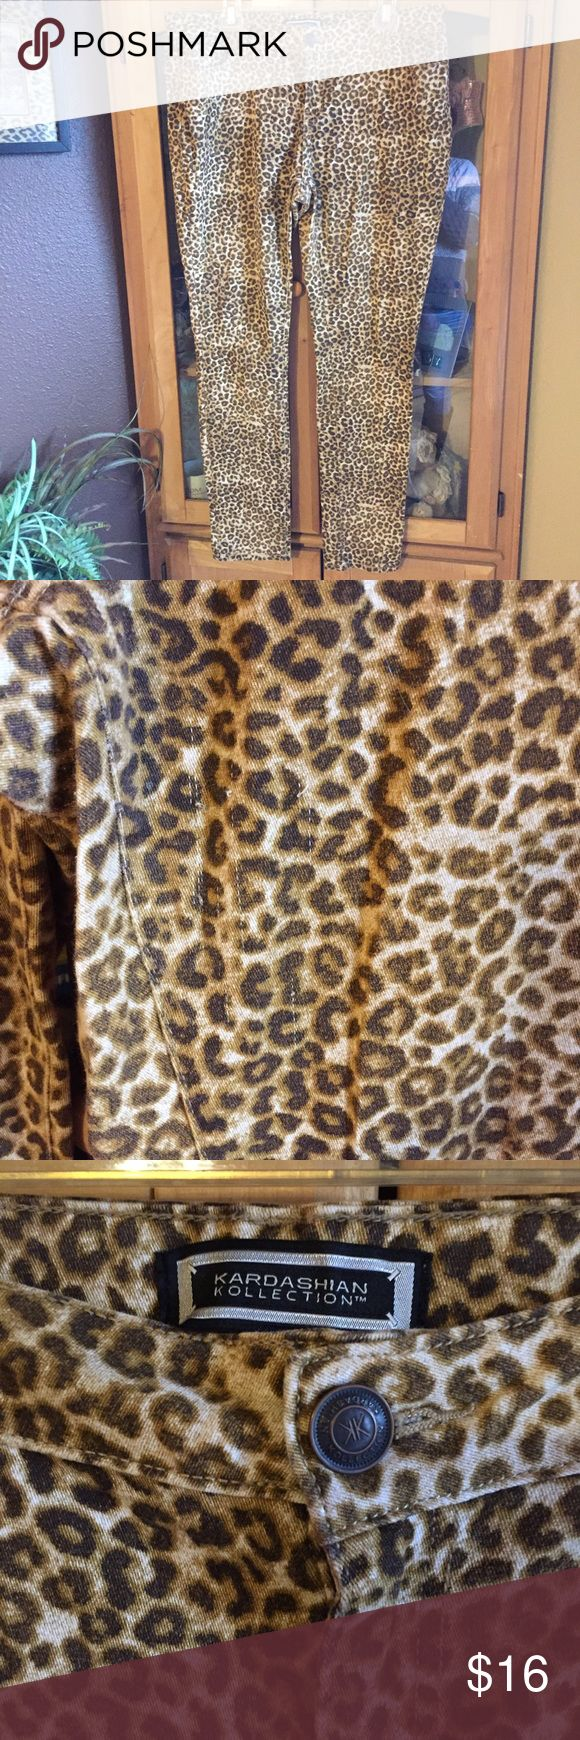 Kardashian Kollection leopard print Awesome leopard print with Kardashian Kollection hardware. These also have some stretch to them. See pic two for a few factory defects that are not very noticeable. They are like 3 tiny snags but are so light you really have to look for them. Price adjusted. Non smoking home. Kardashian Kollection Pants